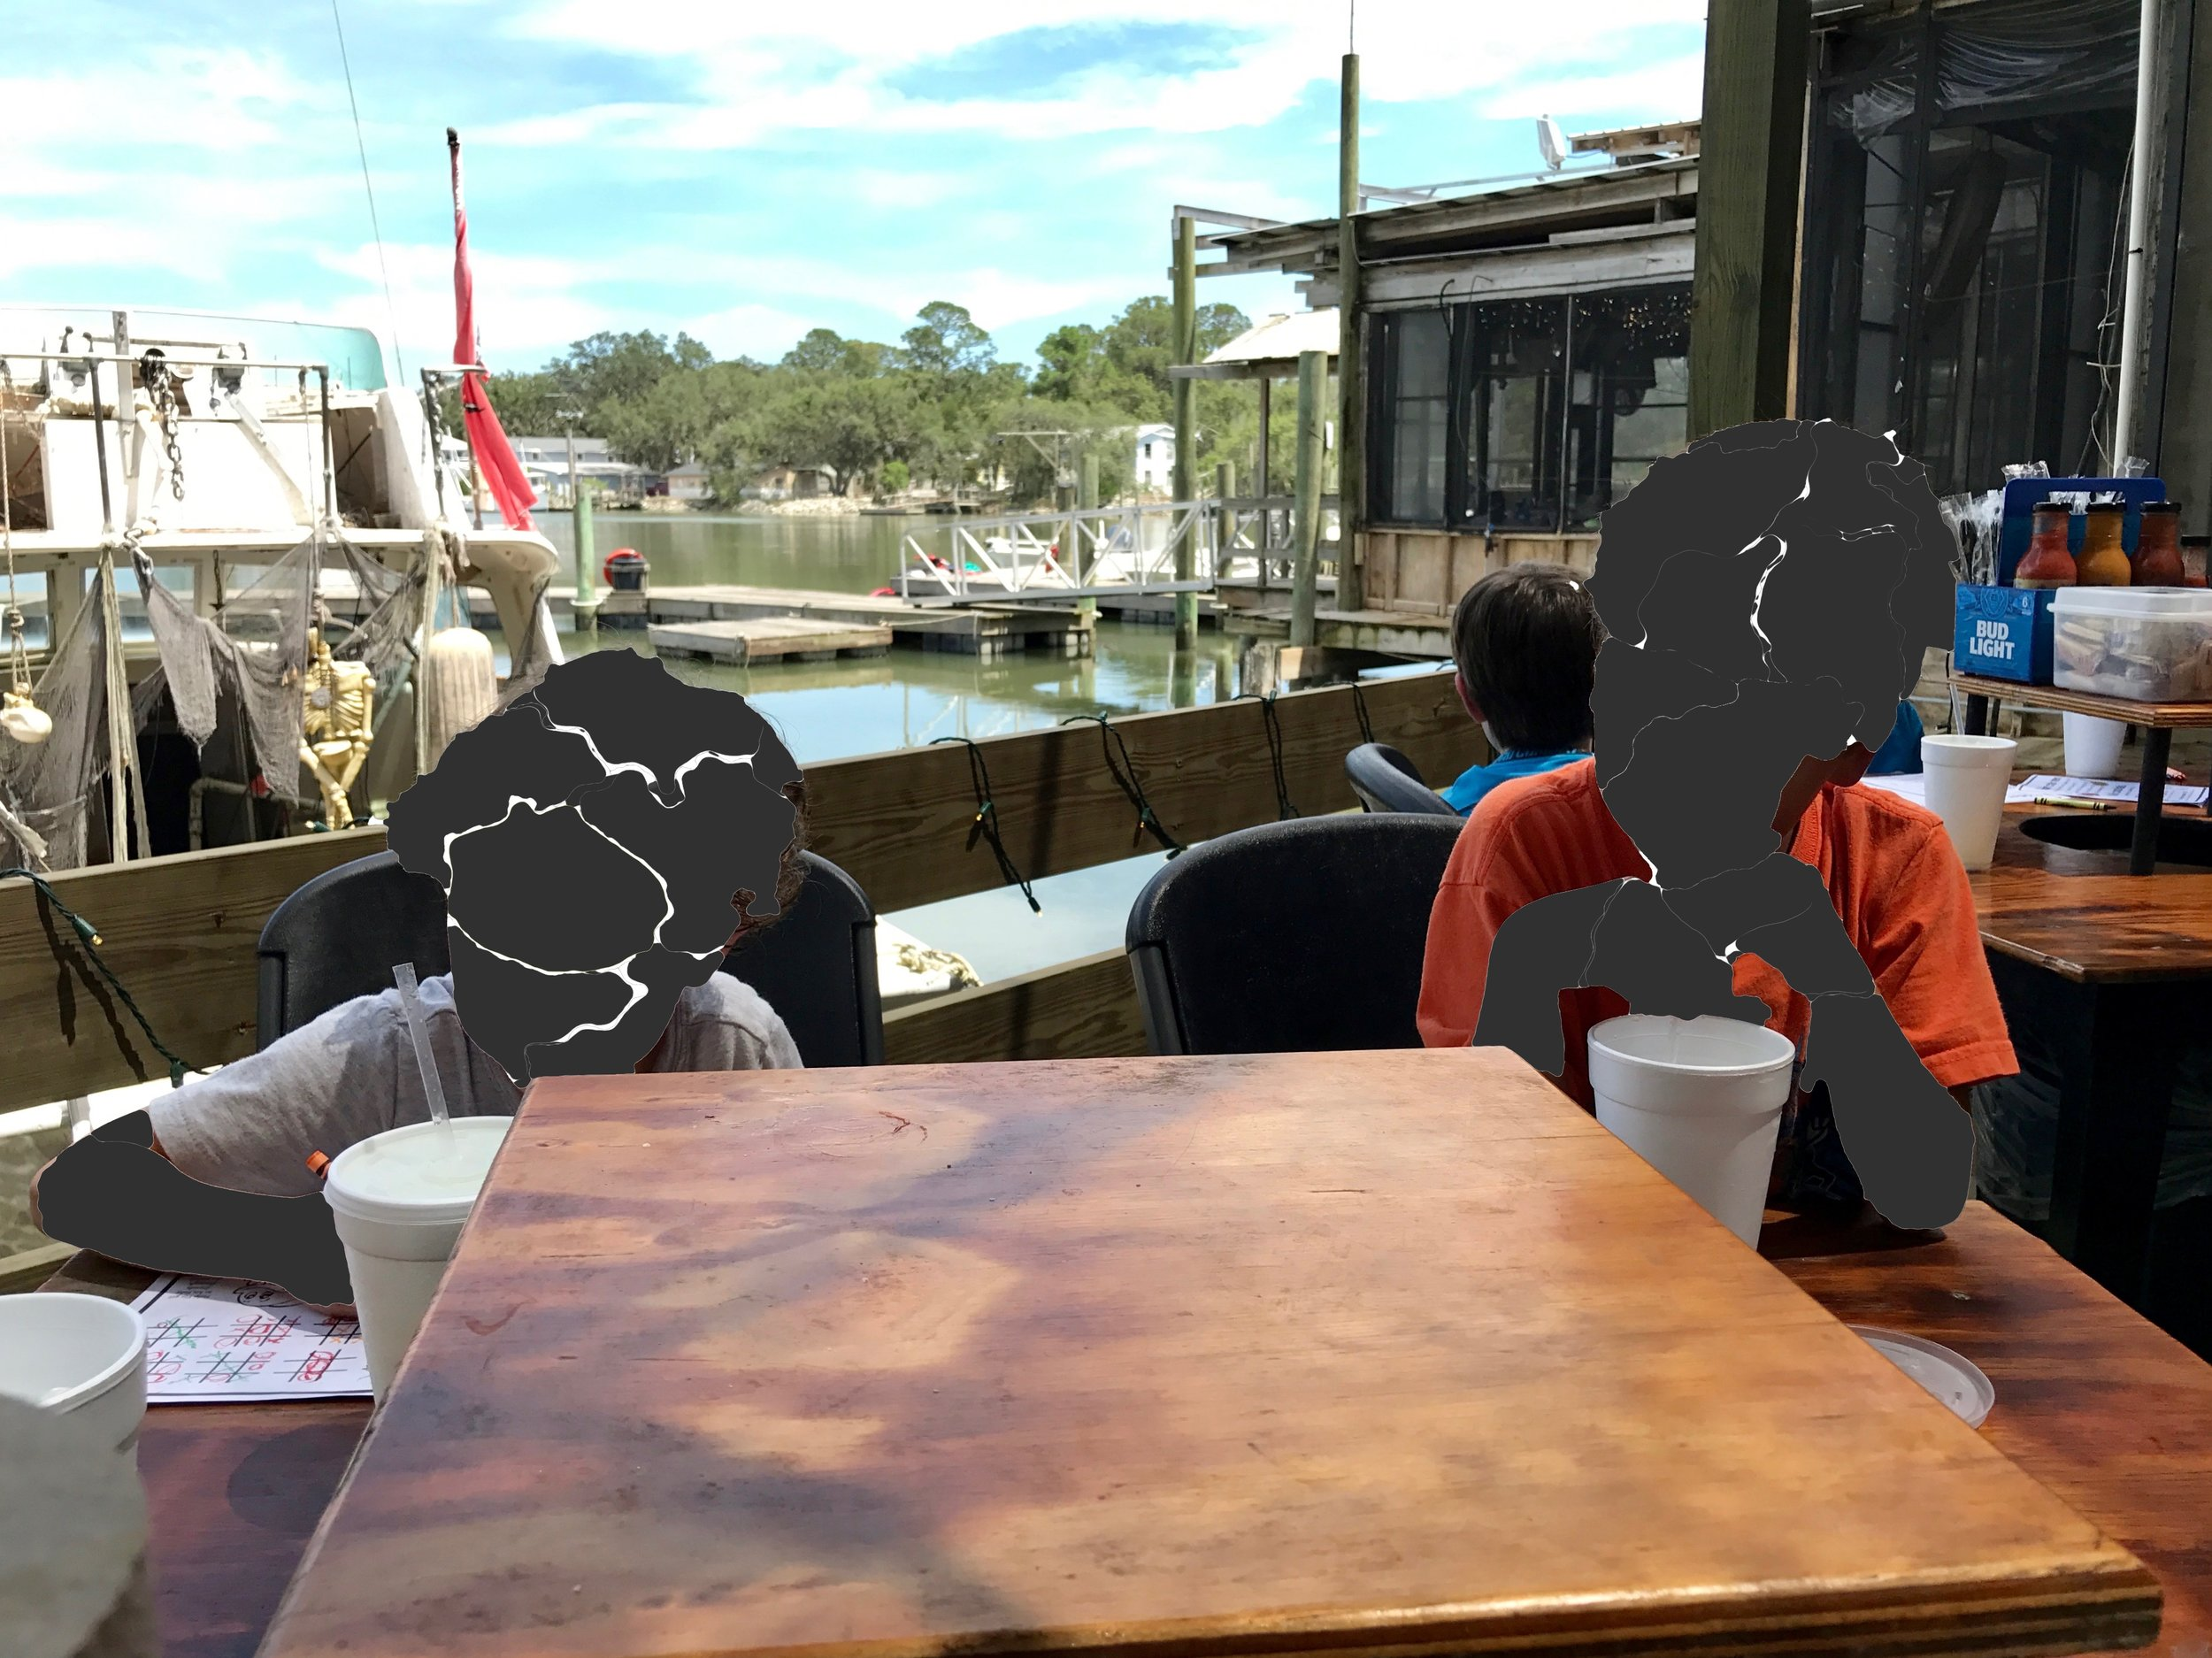 Our view for dinner, overlooking Chimney Creek, at The Crab Shack.